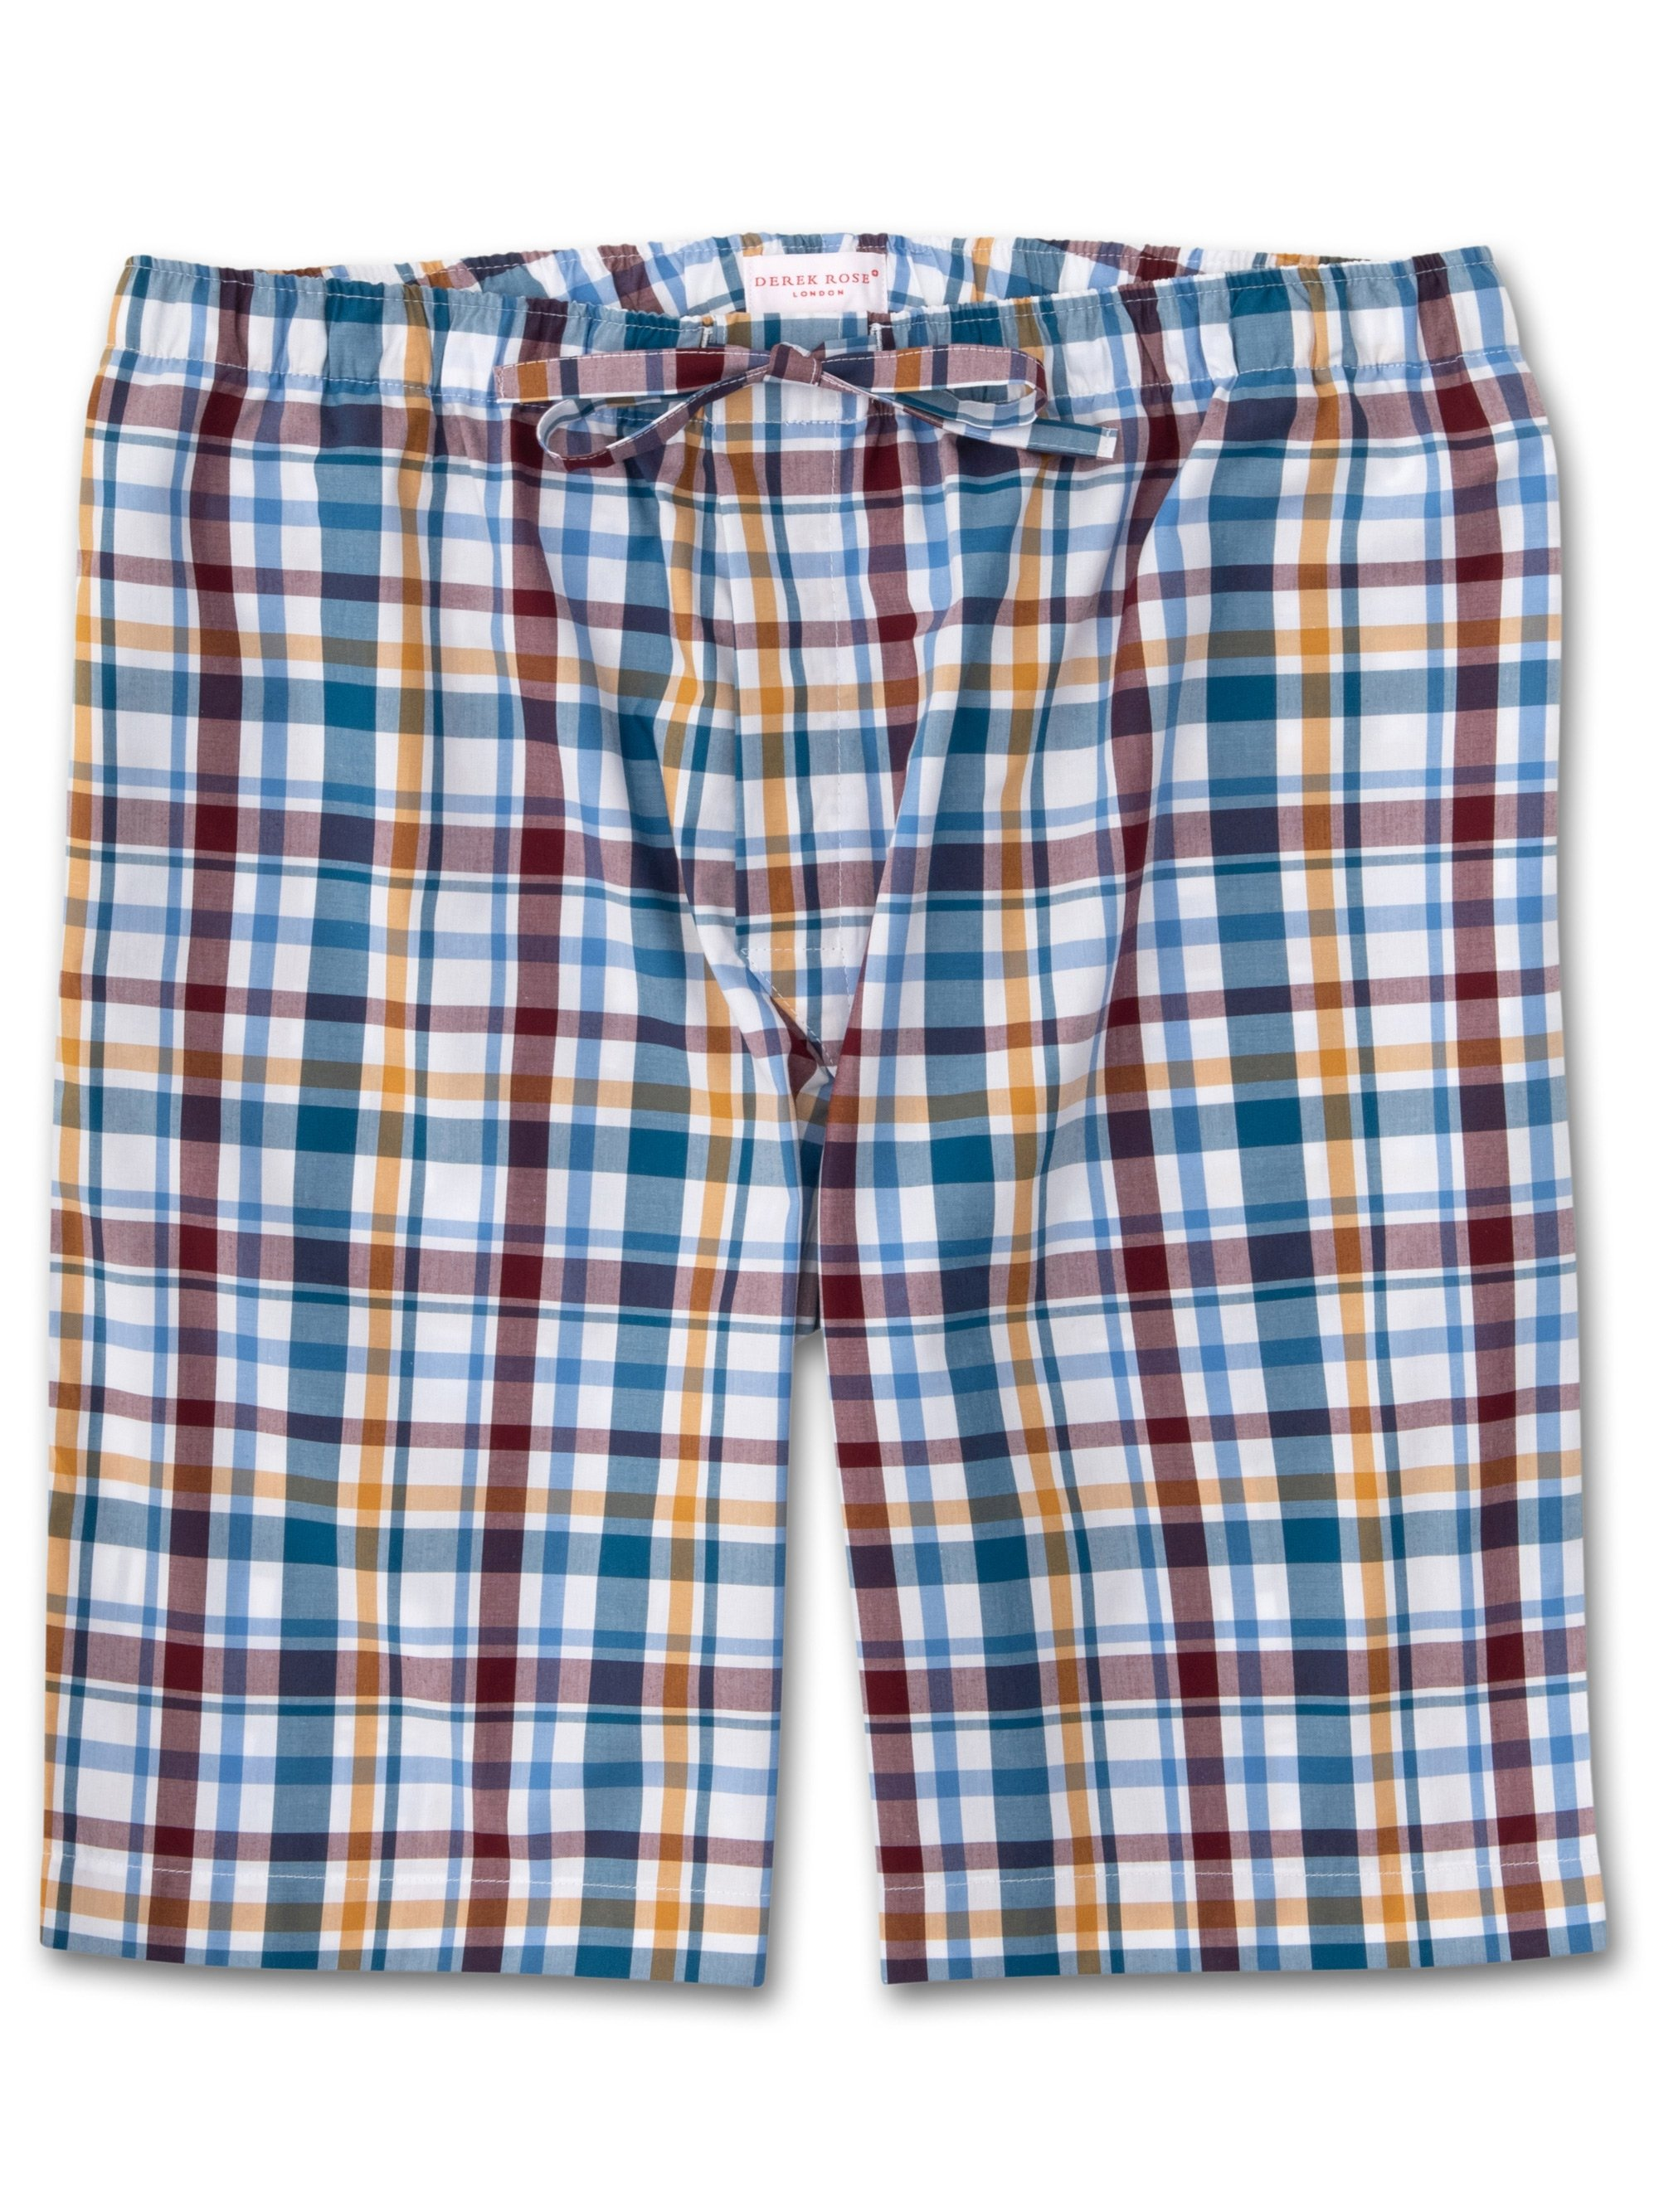 Men's Lounge Shorts Barker 25 Cotton Check Multi